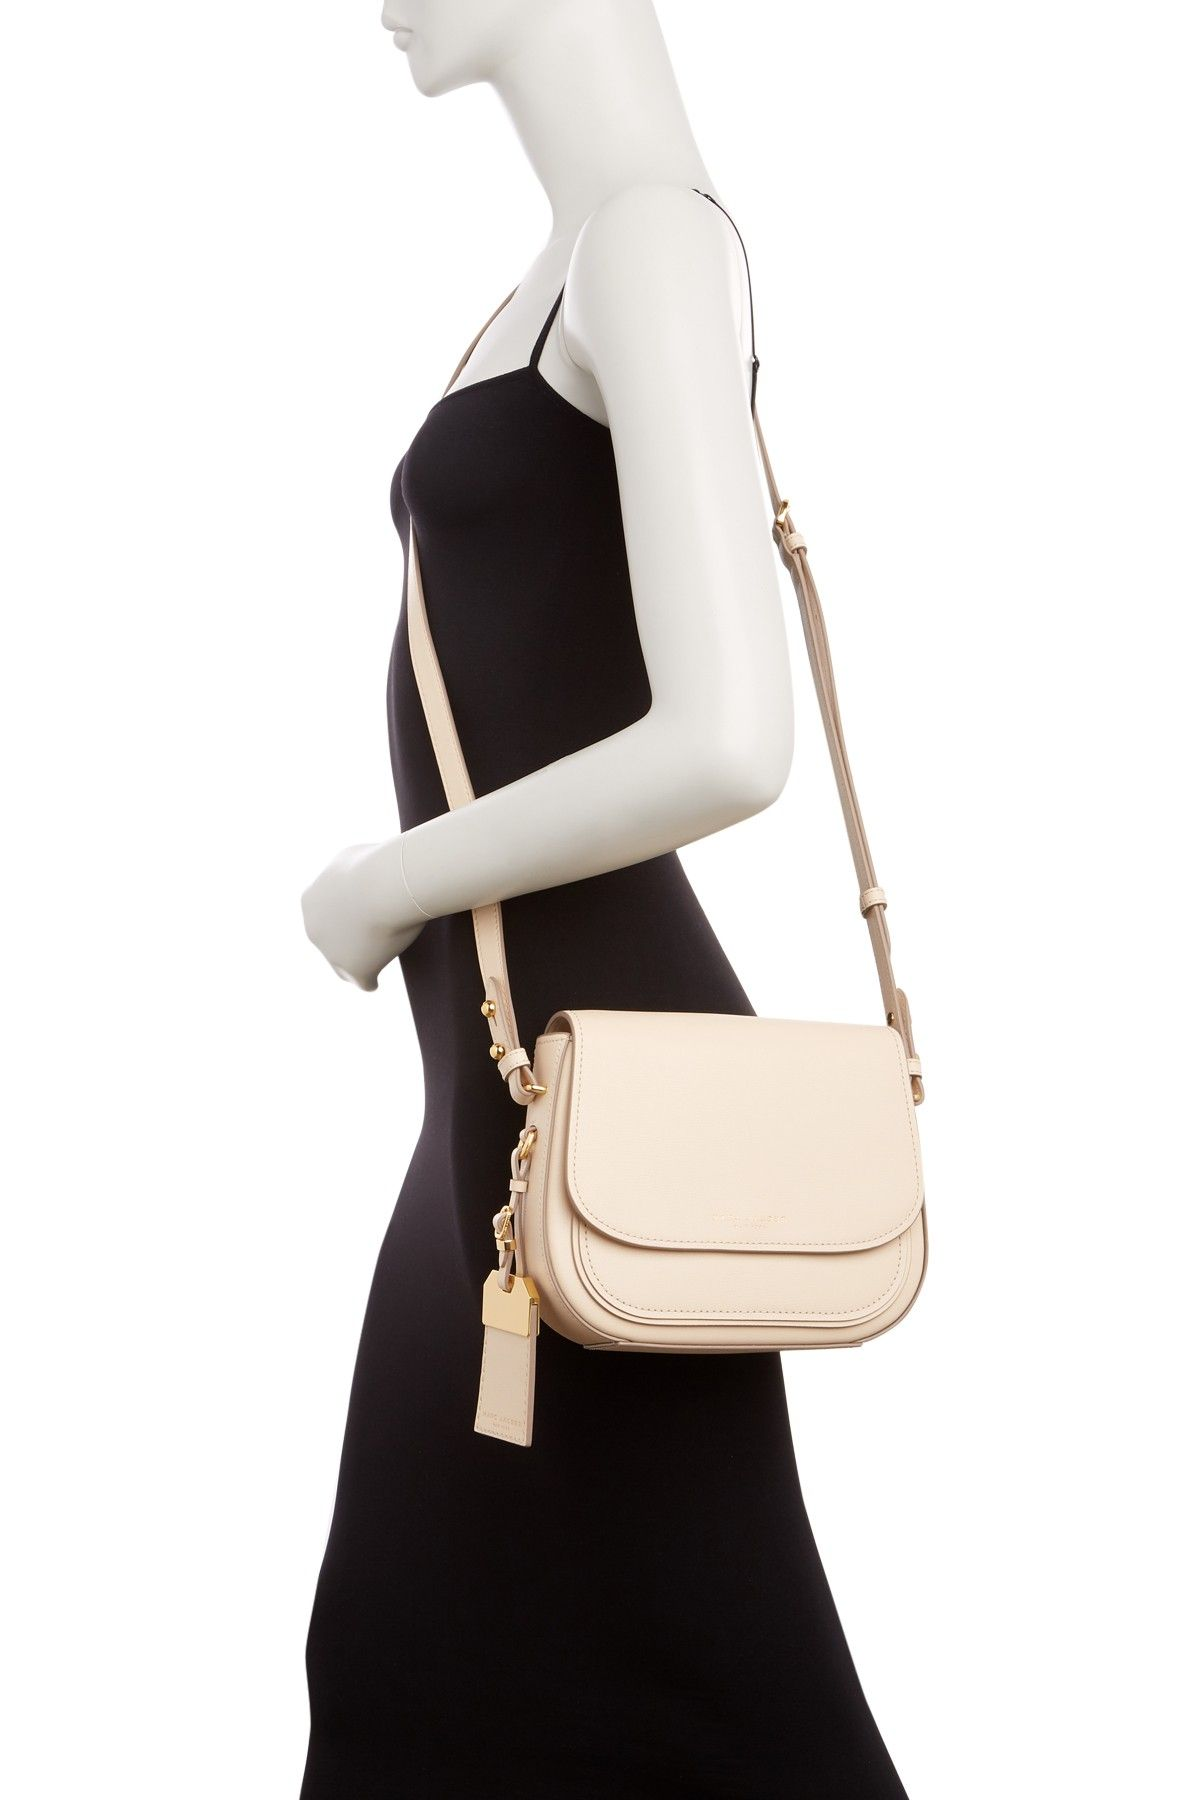 8fe701697950 Marc Jacobs - Mini Rider Crossbody Bag is now 49% off. Free Shipping on  orders over  100.